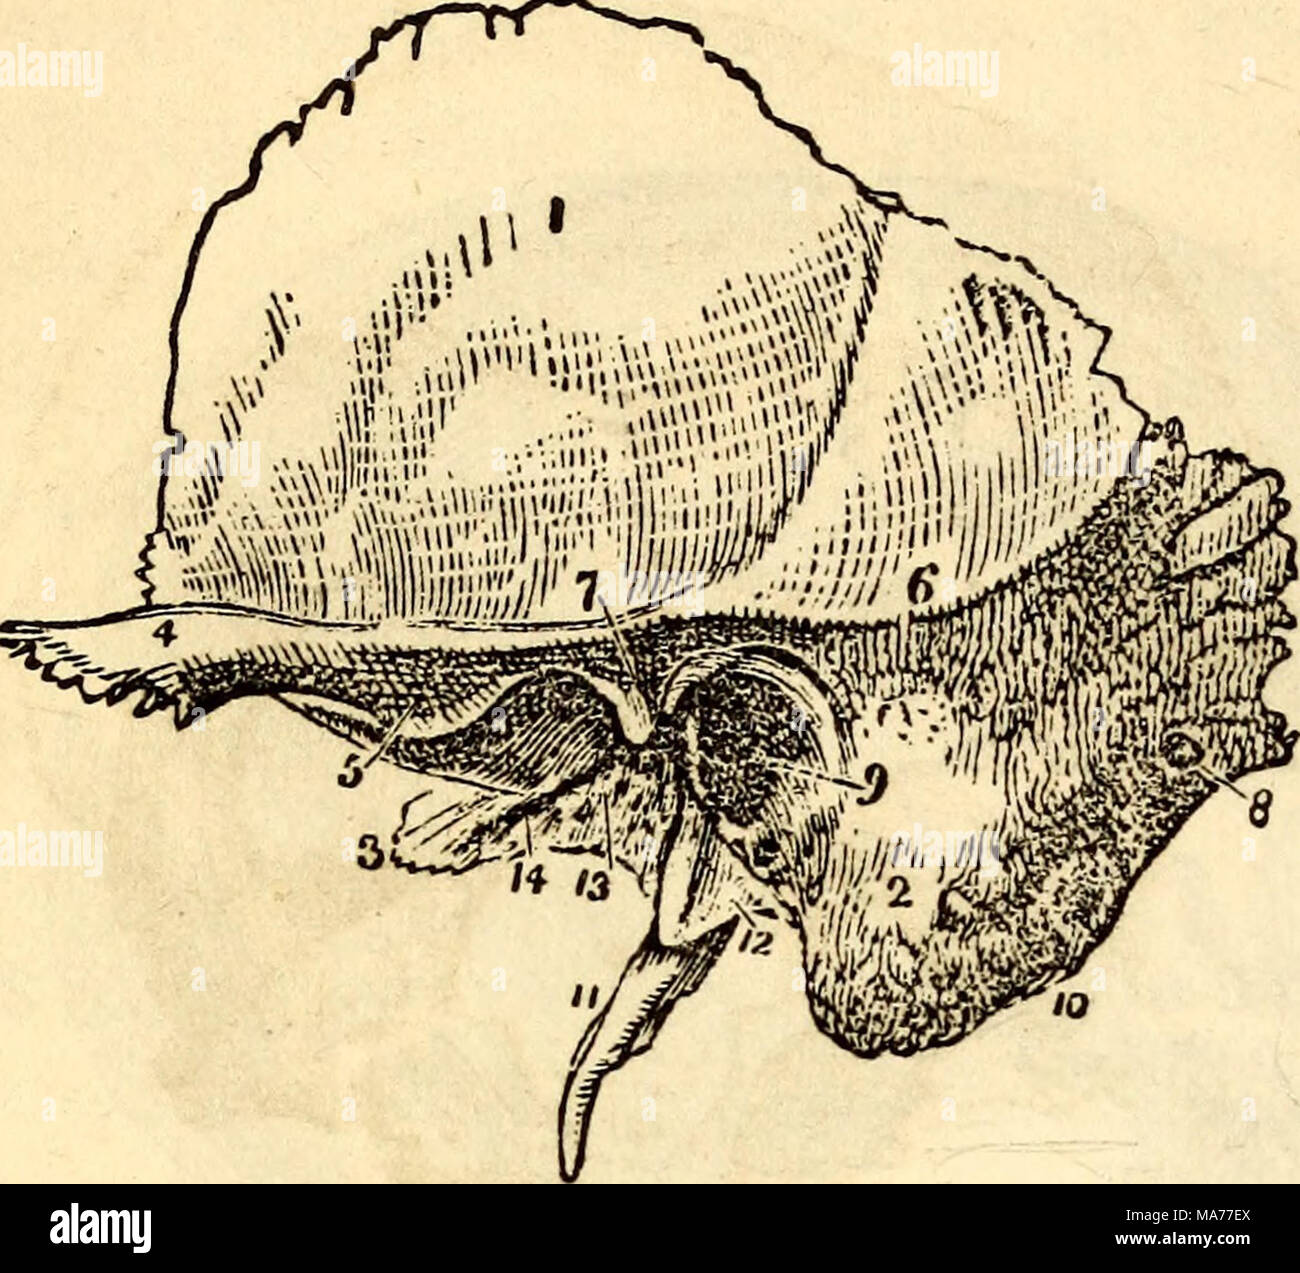 . Elementary anatomy and physiology : for colleges, academies, and other schools . Left Temporal Bone. 1, Squamous portion. 2, Mastoid portion. 3, Petrous portion. 4, Zygo- matic portion. 5, Articulating surface for lower jaw. 6, Temporal ridge. 7, Glenoid fissure. 8, Mastoid foramen. 9, Canal for ear. 10, Groove for digastric muscle. It, Styloid process. 12, Va- ginal process. 13, Glenoid Foramen. 14, Groove for Eustachian tube. Fig. 47. win - Stock Image